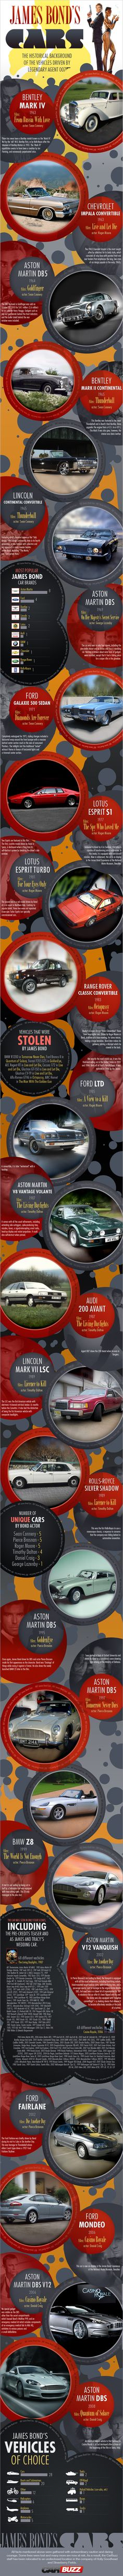 James Bond's cars #infographic